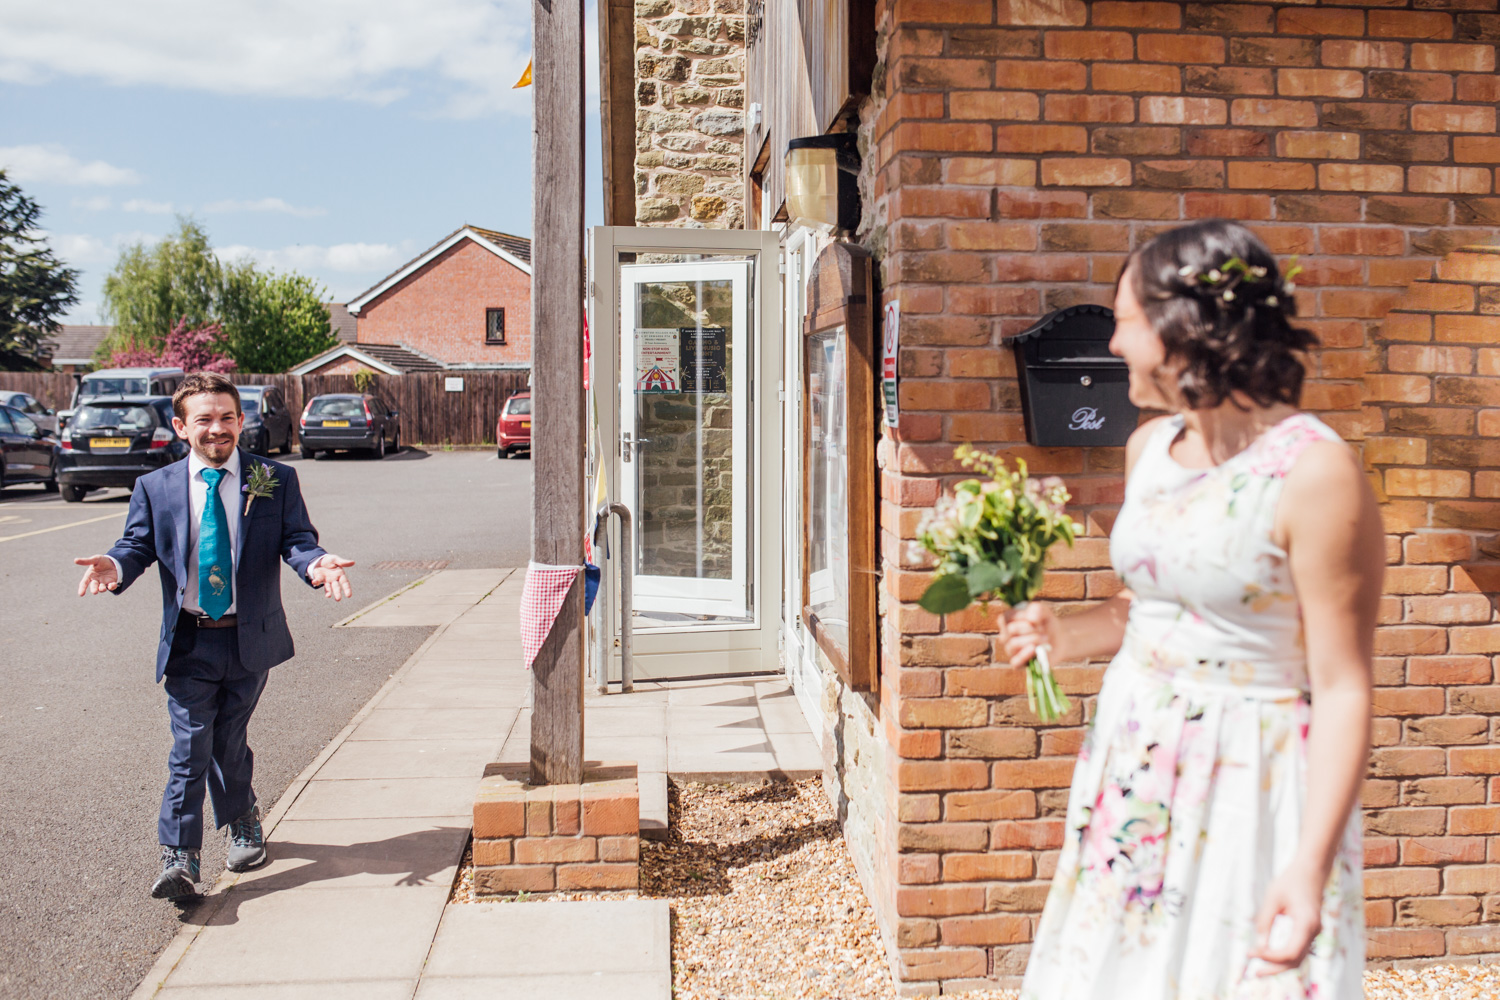 ShrewsburyWeddingPhotographer-9.jpg